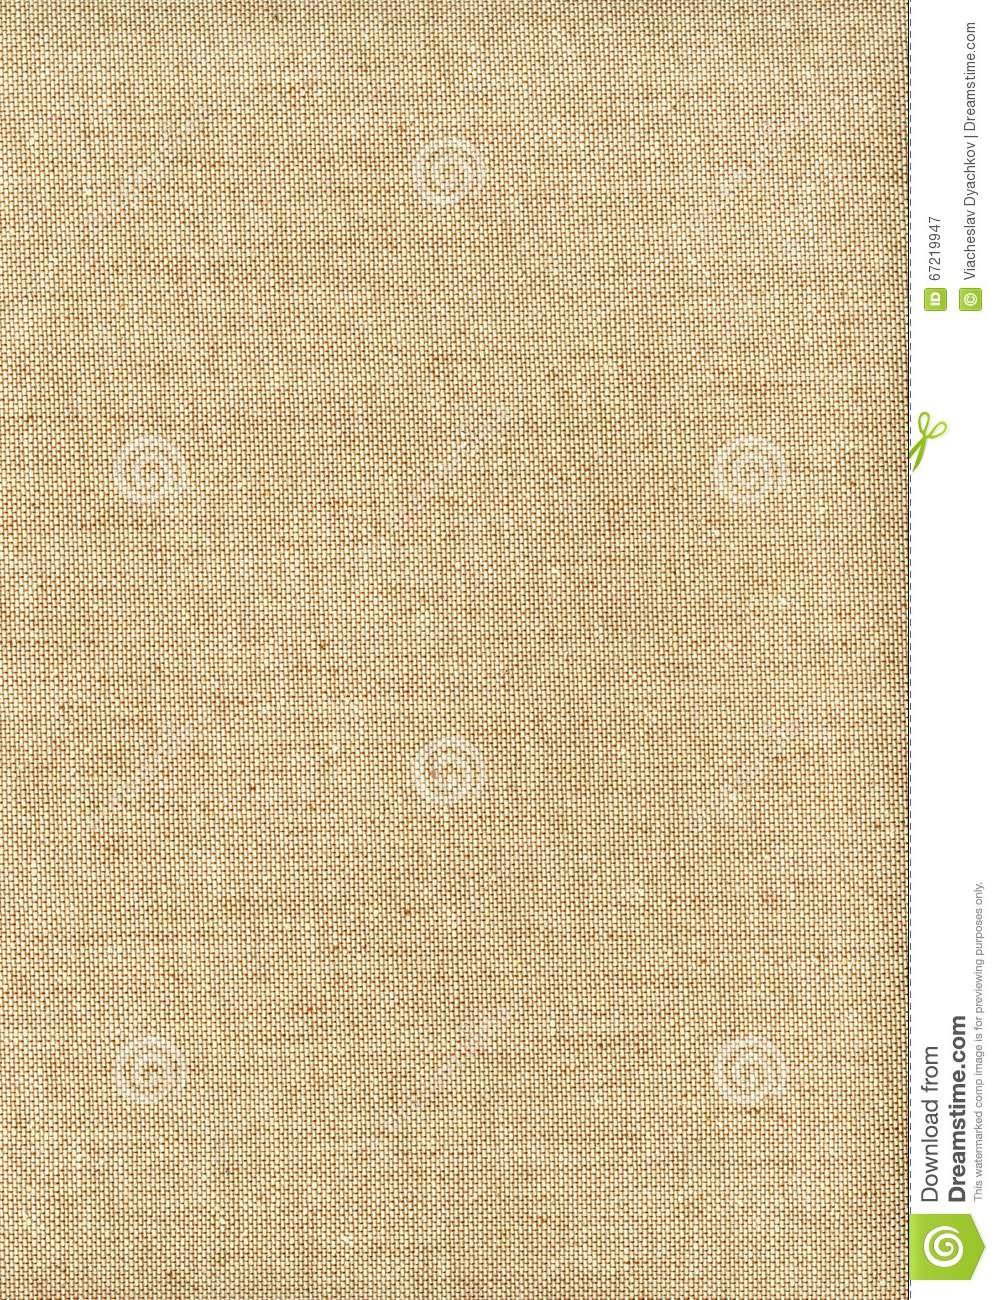 skanirovaniya texture rough light brown cream fabric natural canvas tarpaulin brown linen fabric lighting